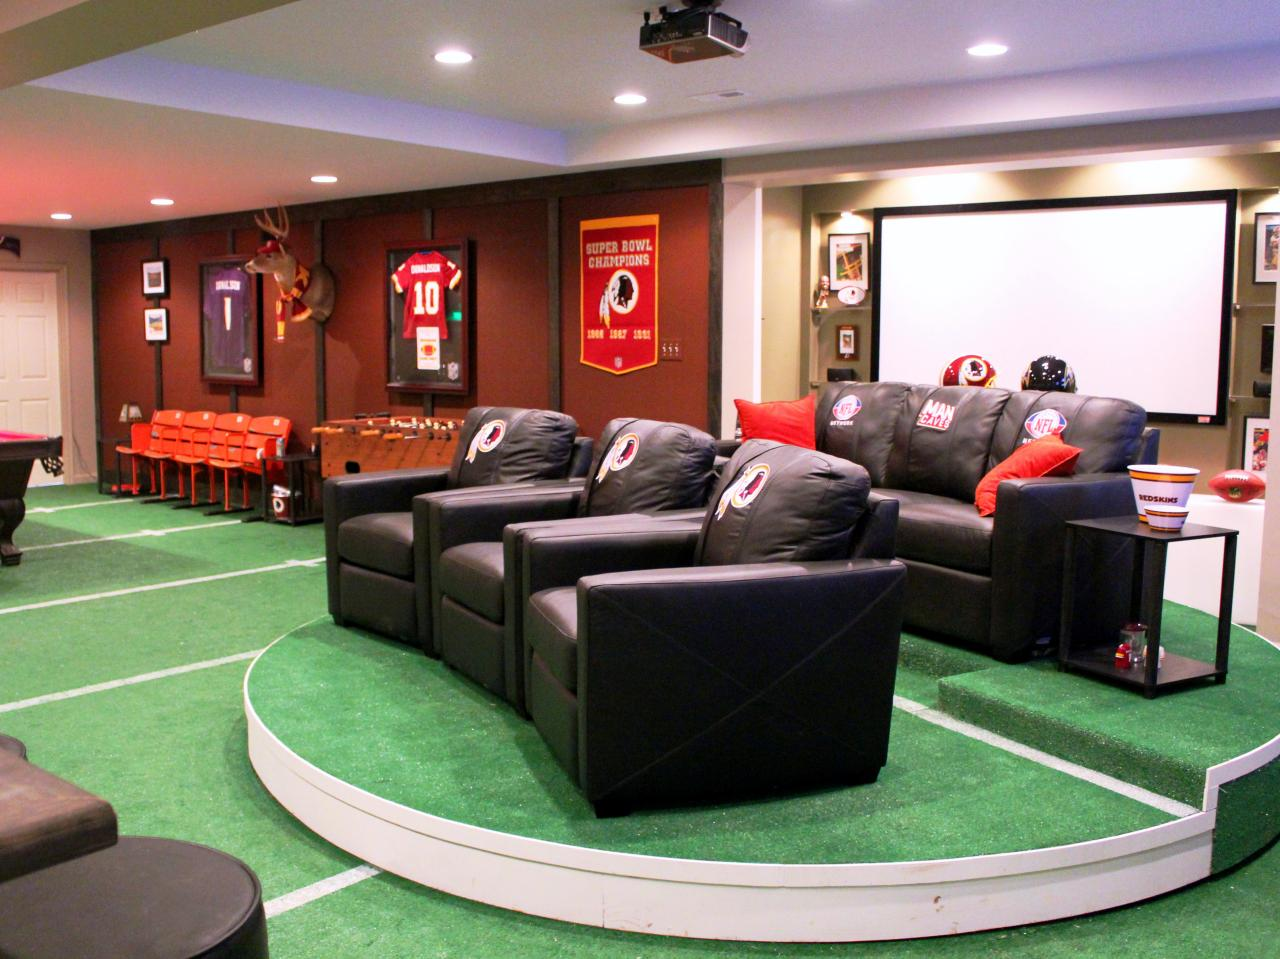 Best Fan To Cool A Room 5 Basement Game Room Ideas February 2019 Toolversed